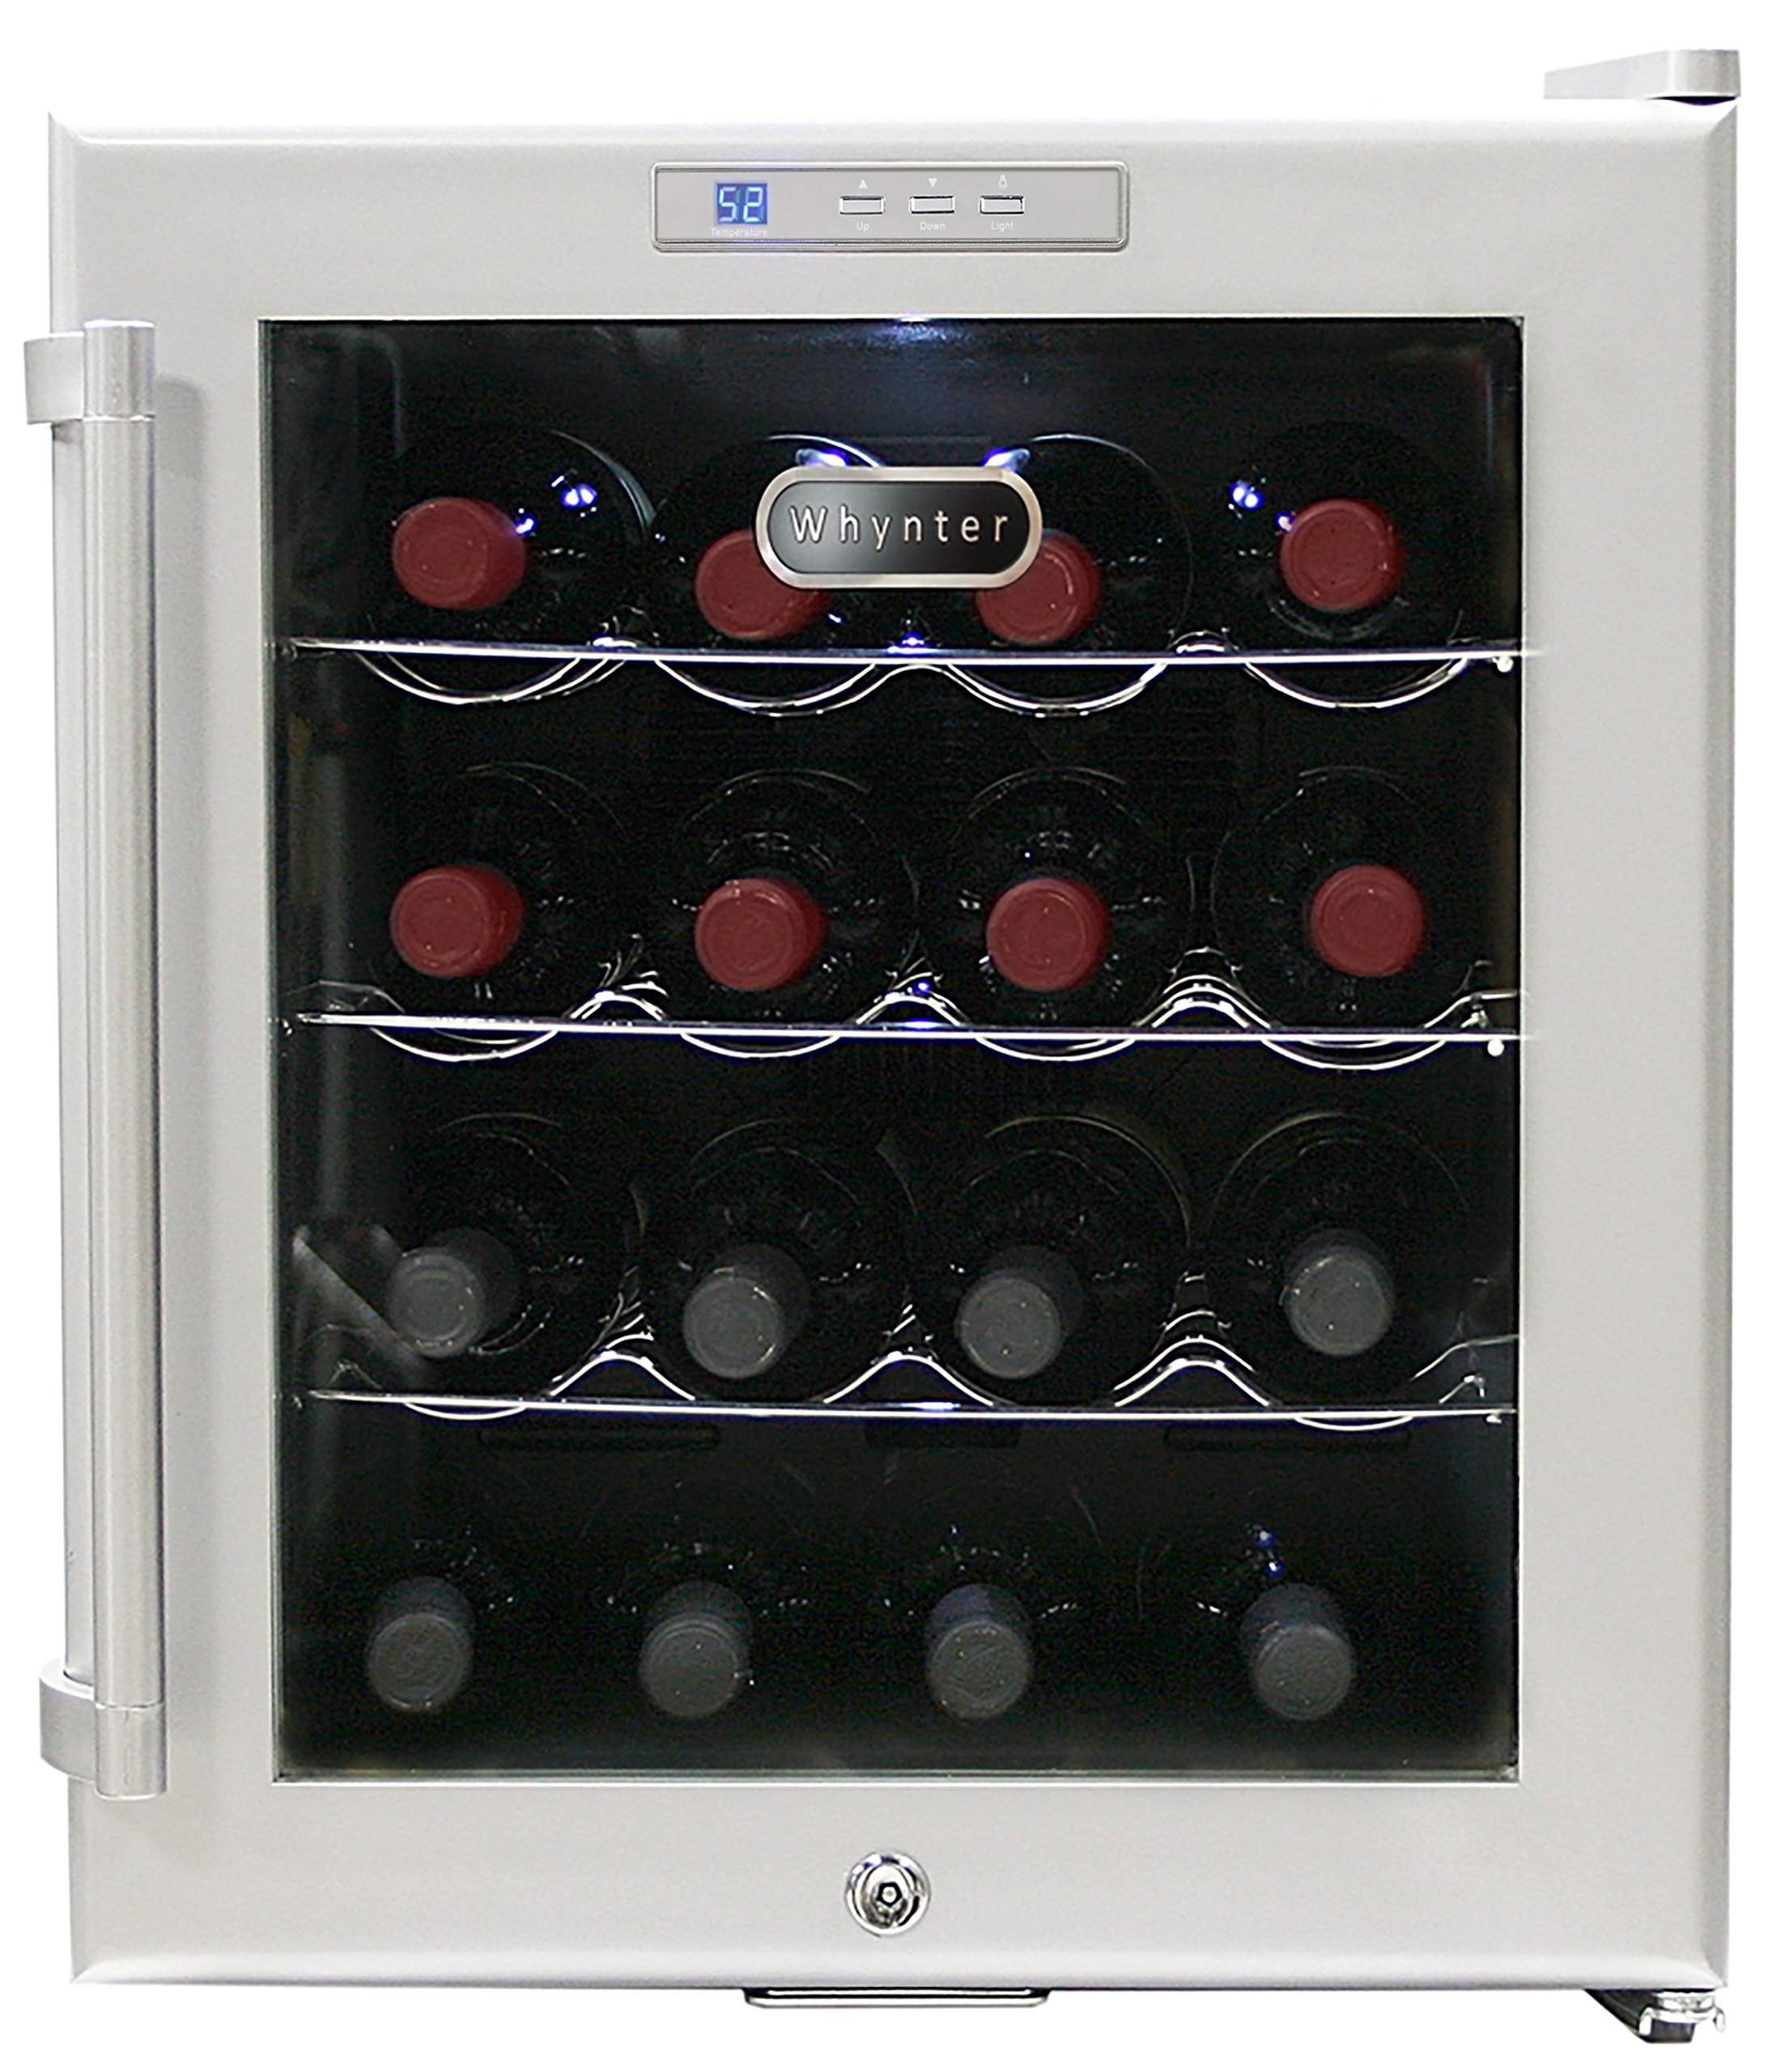 Whynter WC-16S SNO 16 Bottle Wine Cooler, Platinum with Lock by Whynter